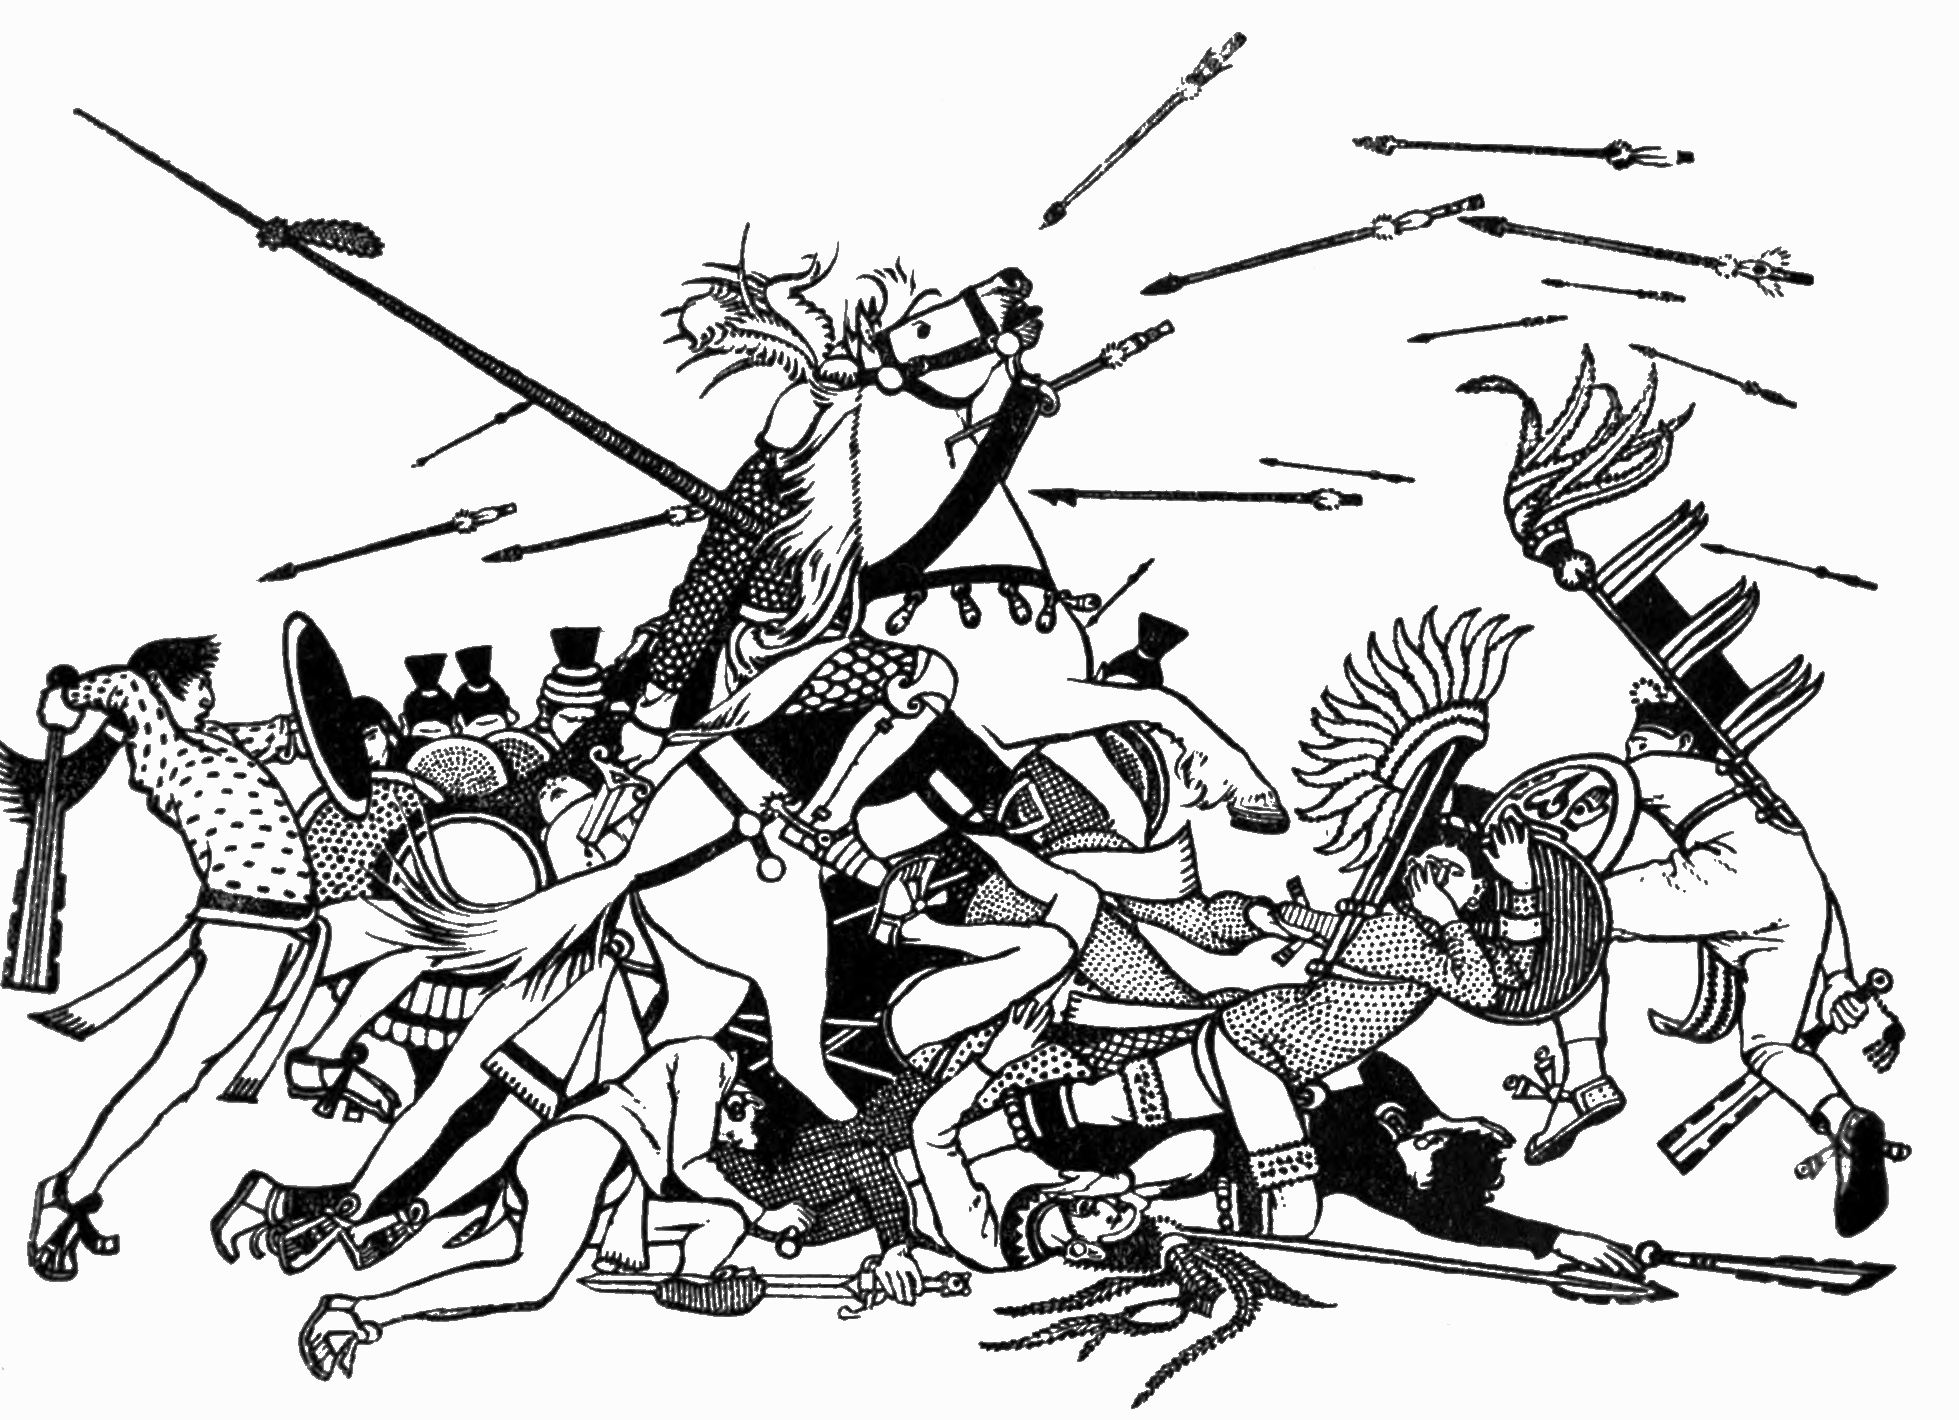 conquest of mexico The conquest of mexico is one of the most significant and important events in the western hemisphere not only was one of the greatest indian civilizations left in ruins, but the spanish.